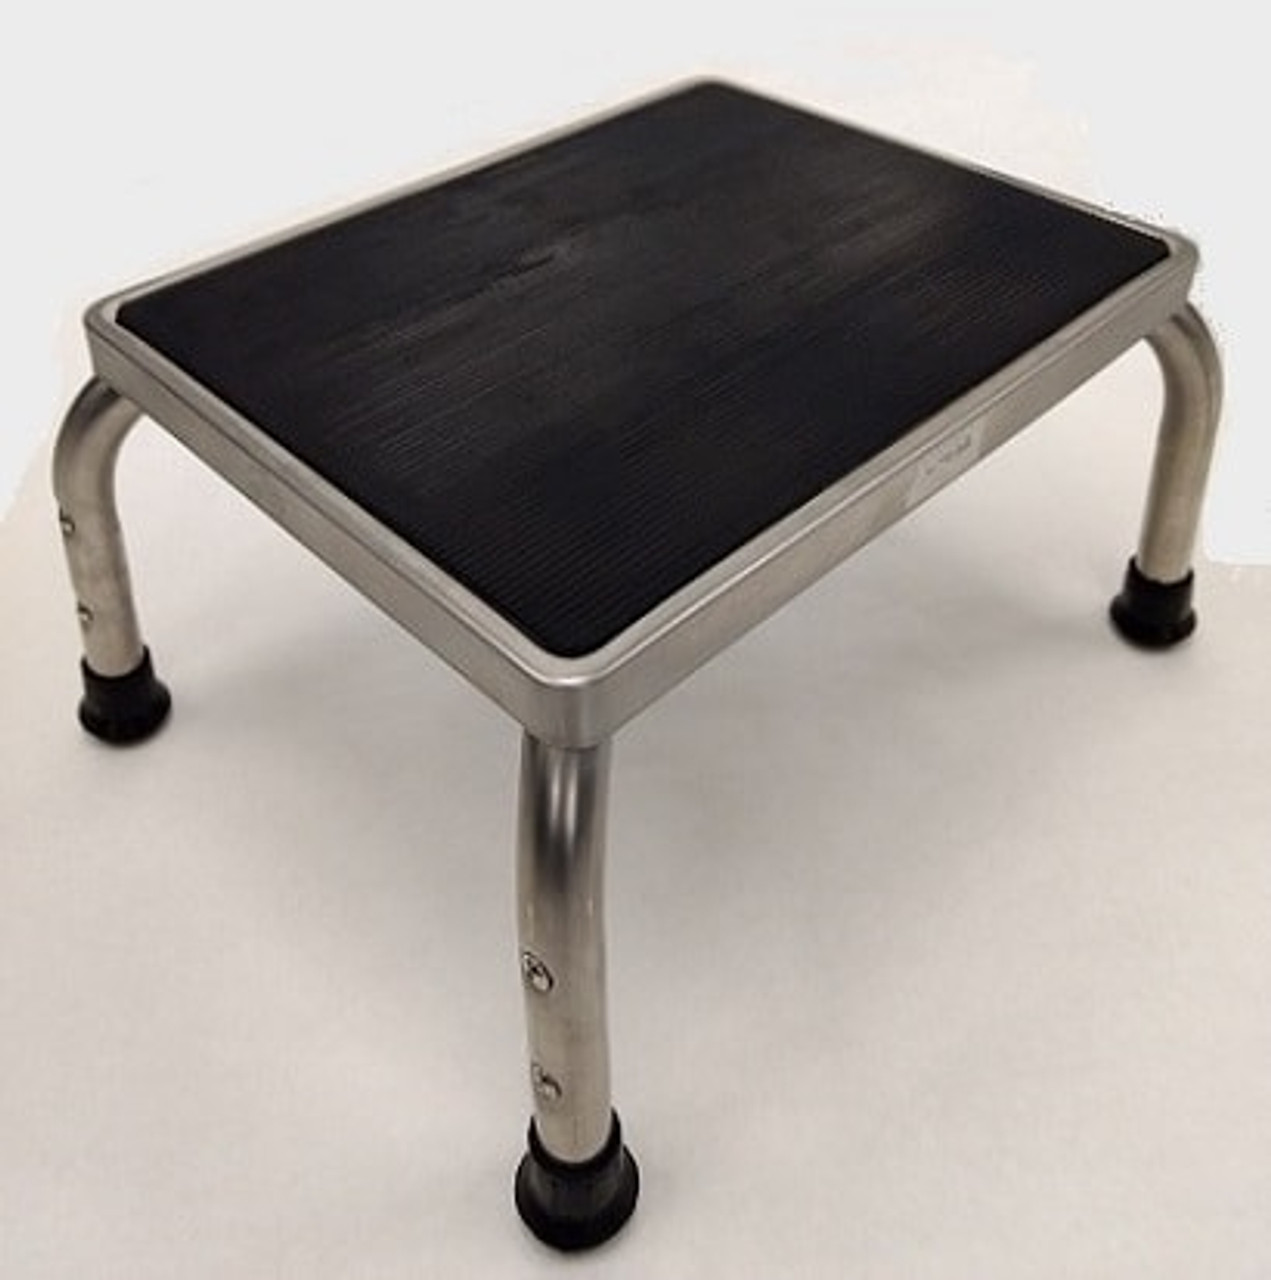 Sensational Cleanroom Step Stools Lab Step Stools Cleanroom World Gmtry Best Dining Table And Chair Ideas Images Gmtryco